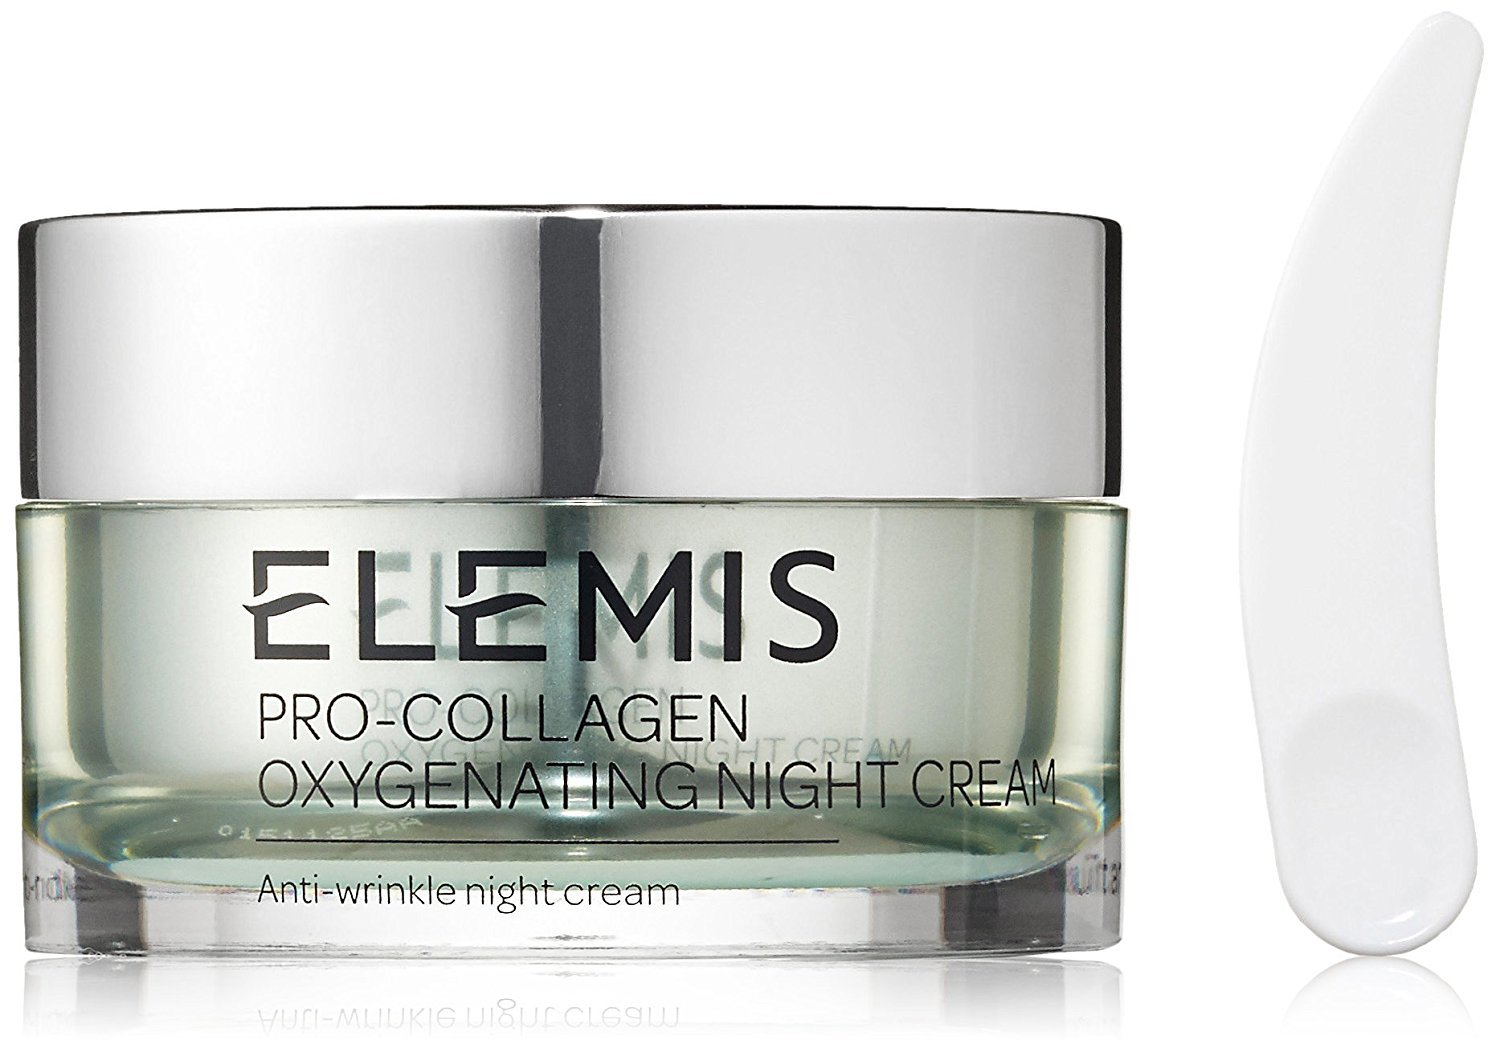 ELEMIS Pro-Collagen Oxygenating Night Cream - Anti-Wrinkle Night Cream